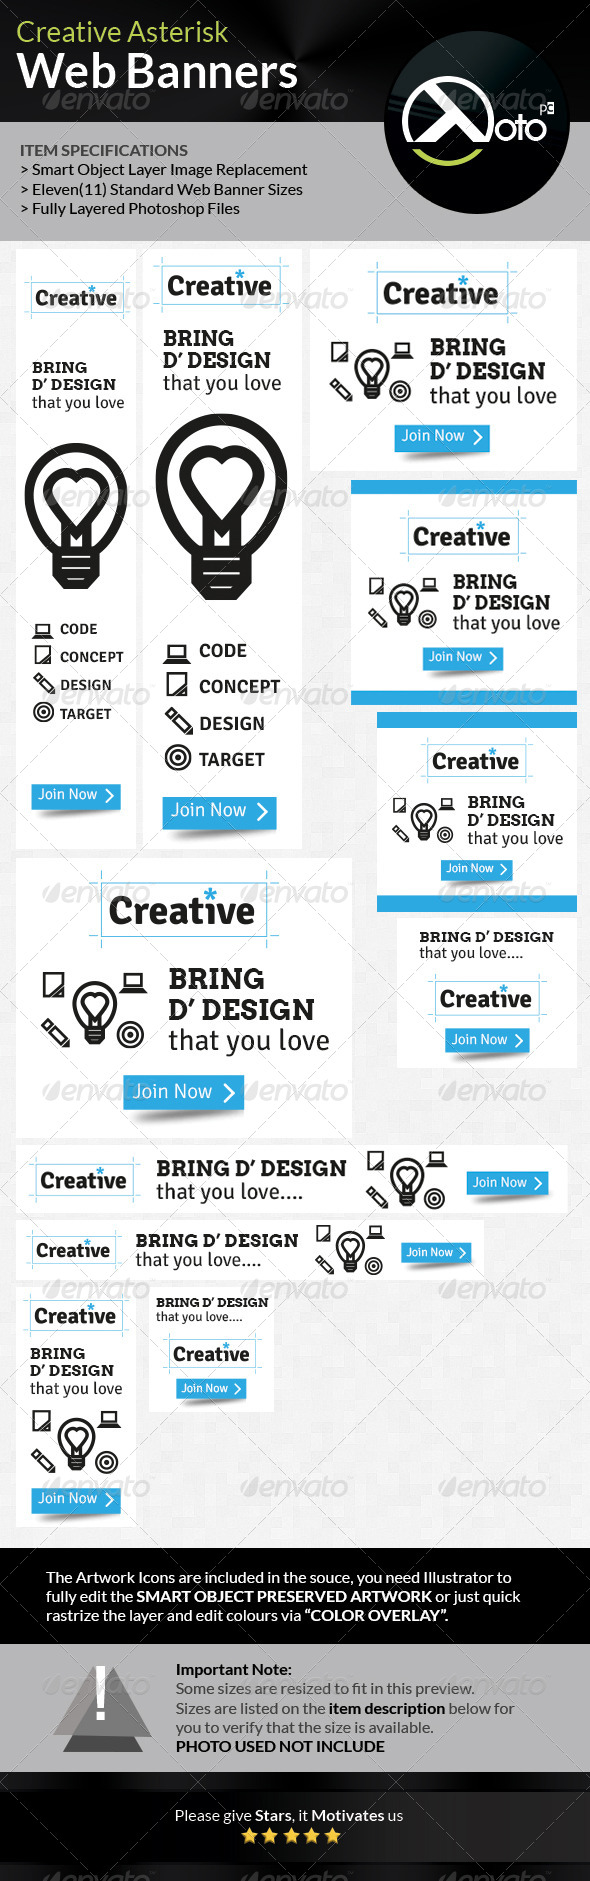 GraphicRiver Creative Asterisk Web Banners 6895506